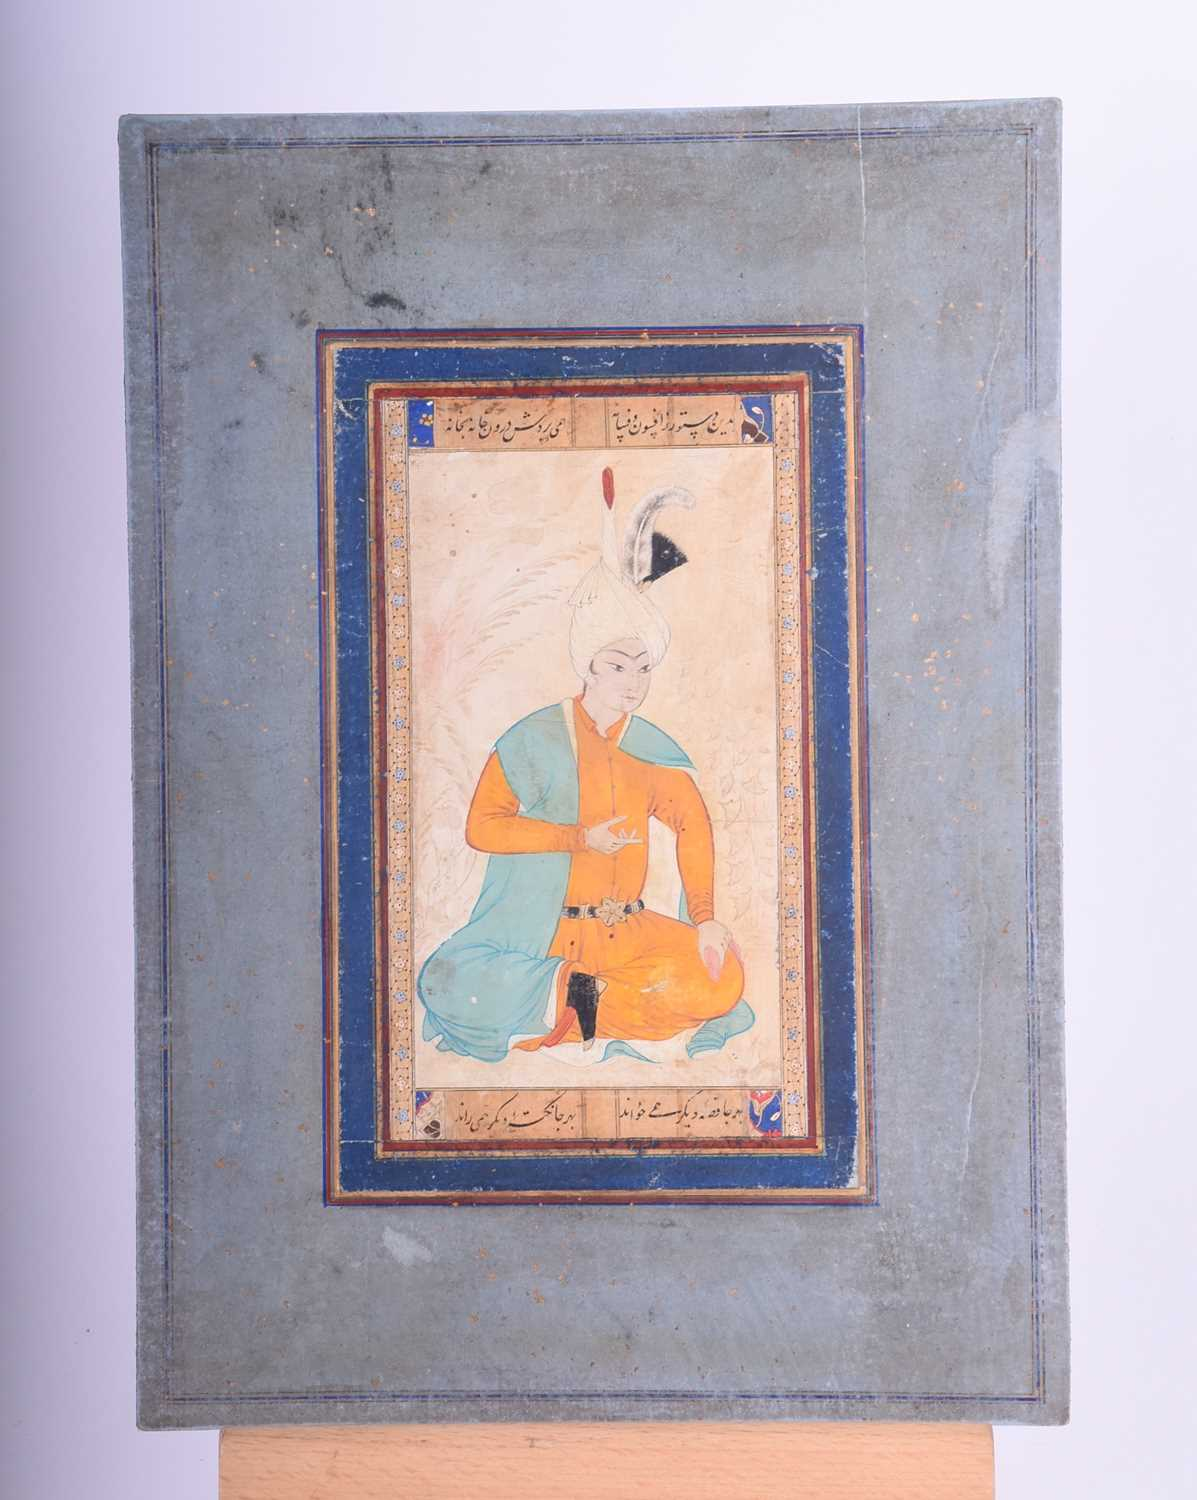 Lot 194 - 19th century Indian school, A seated nobleman, surrounded by foliage, between panels of script and